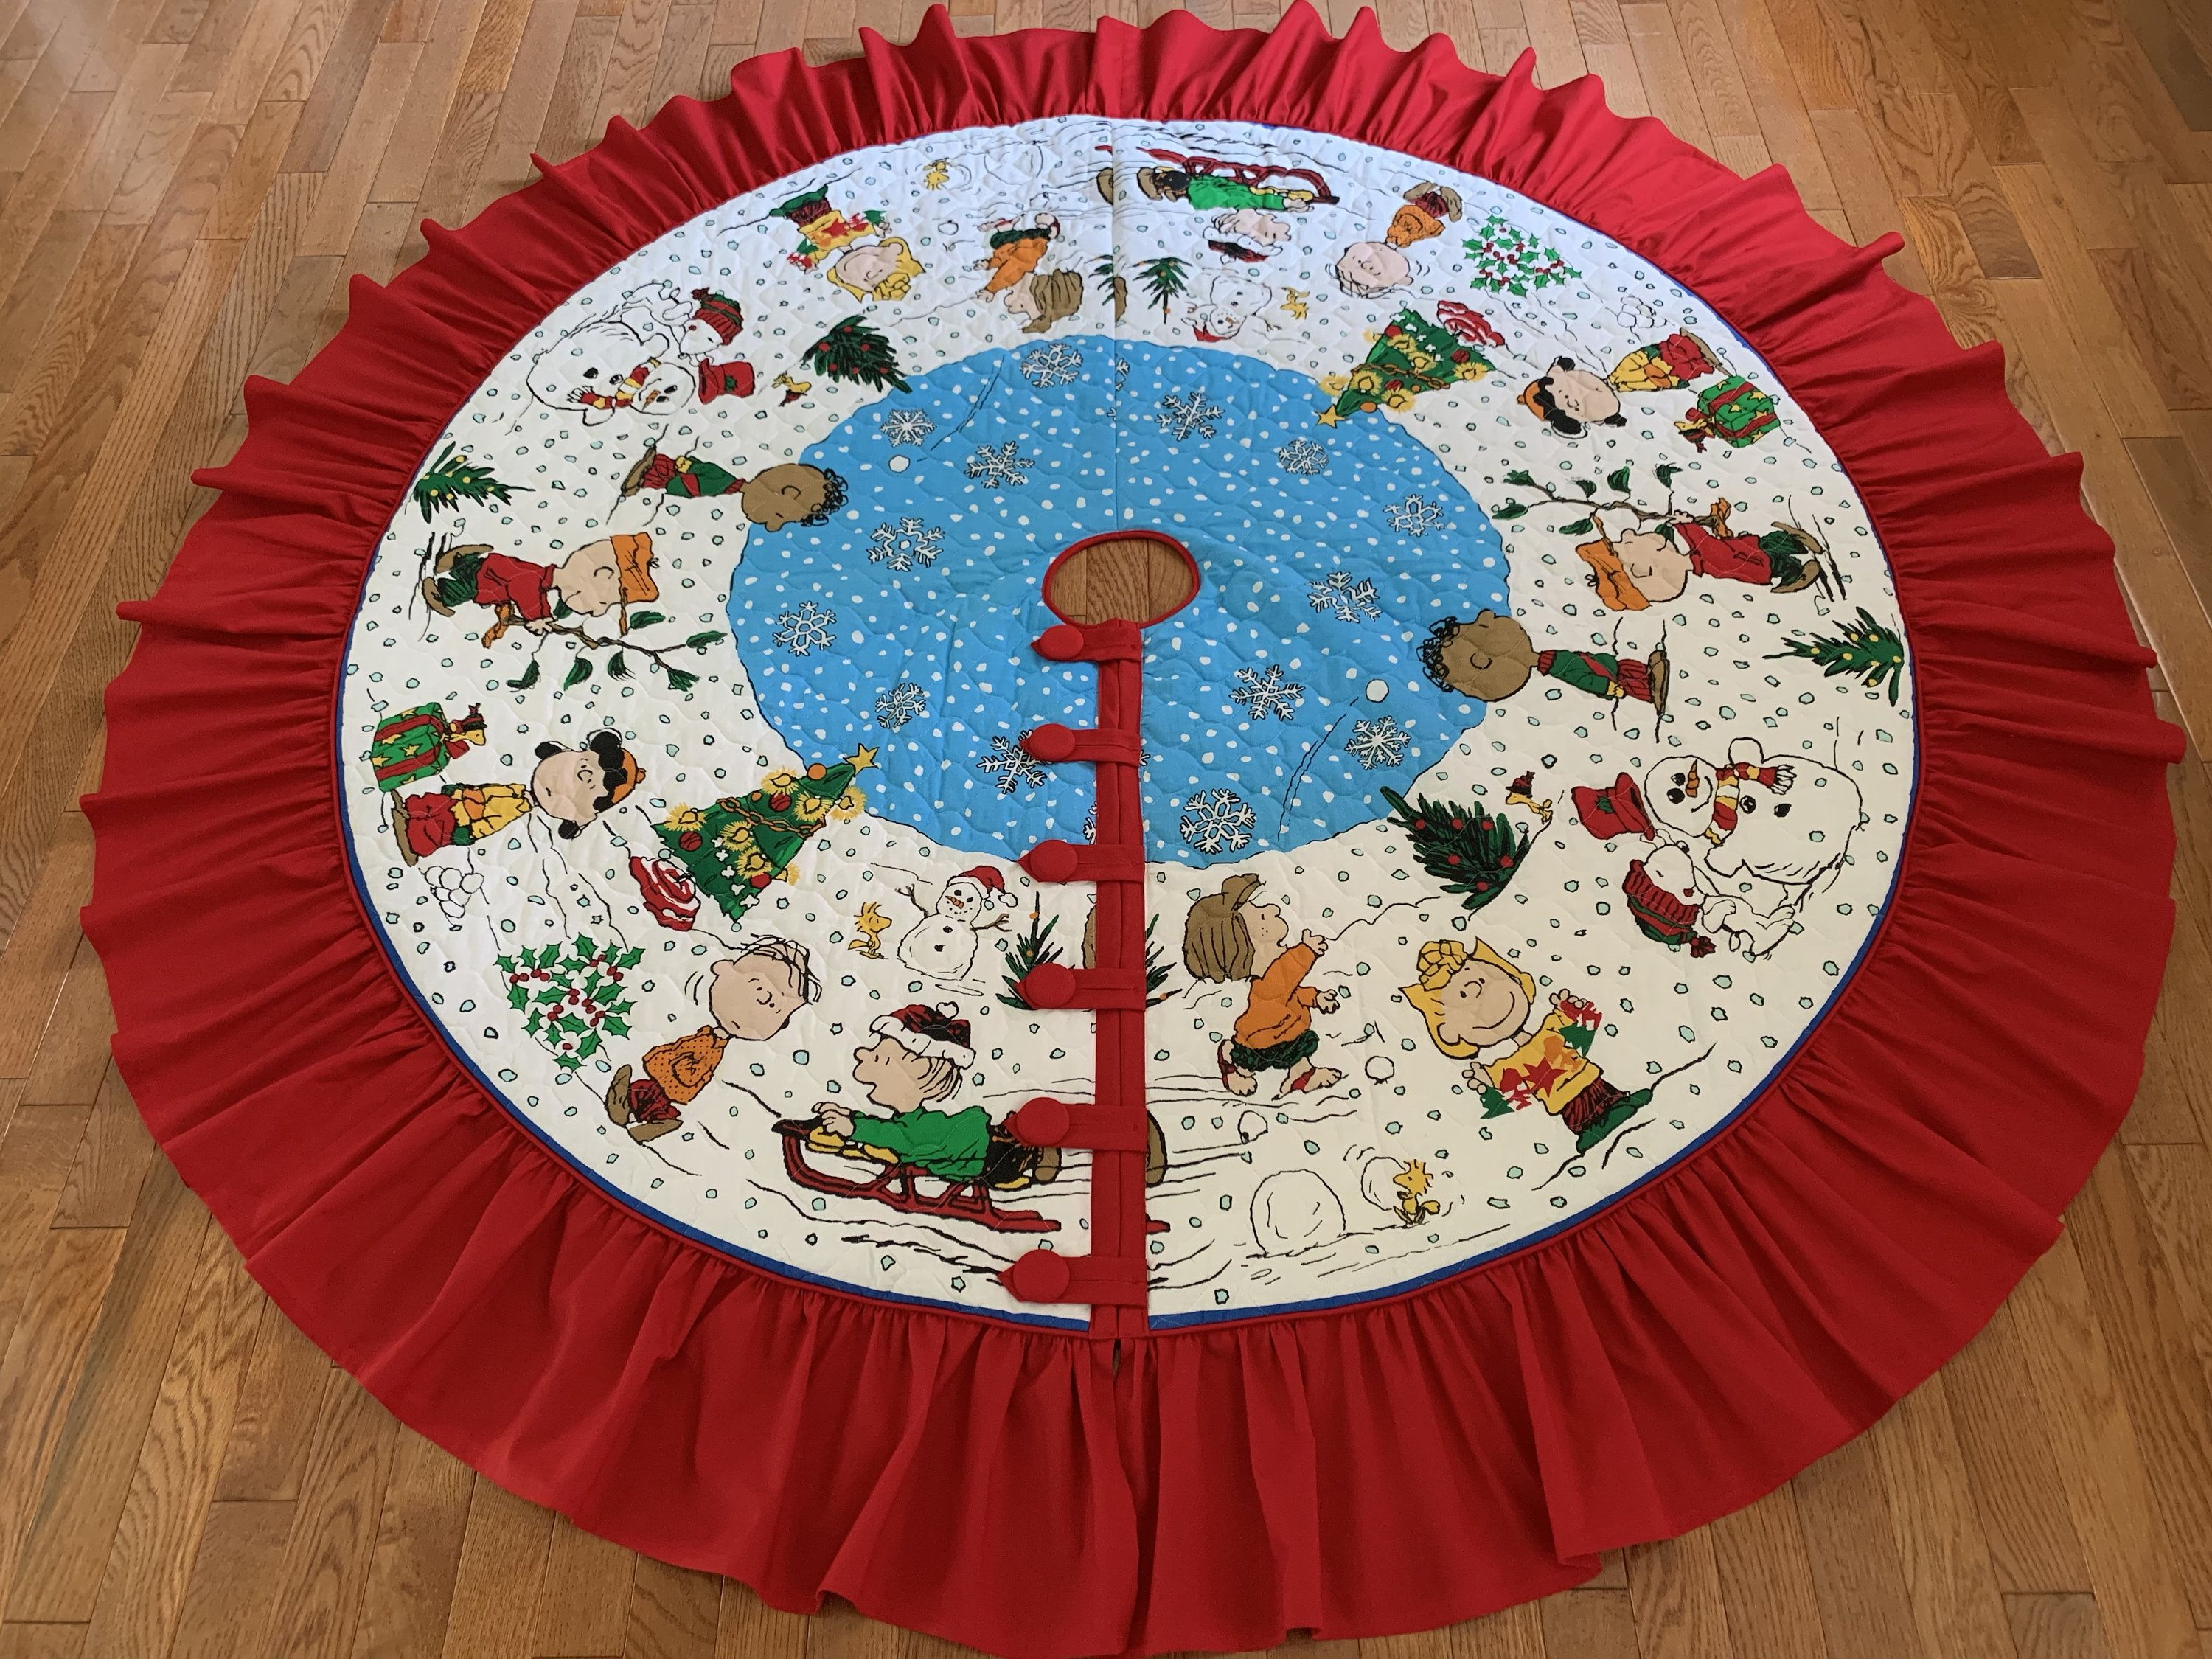 Large Charlie Brown, Snoopy & friends Christmas tree skirt